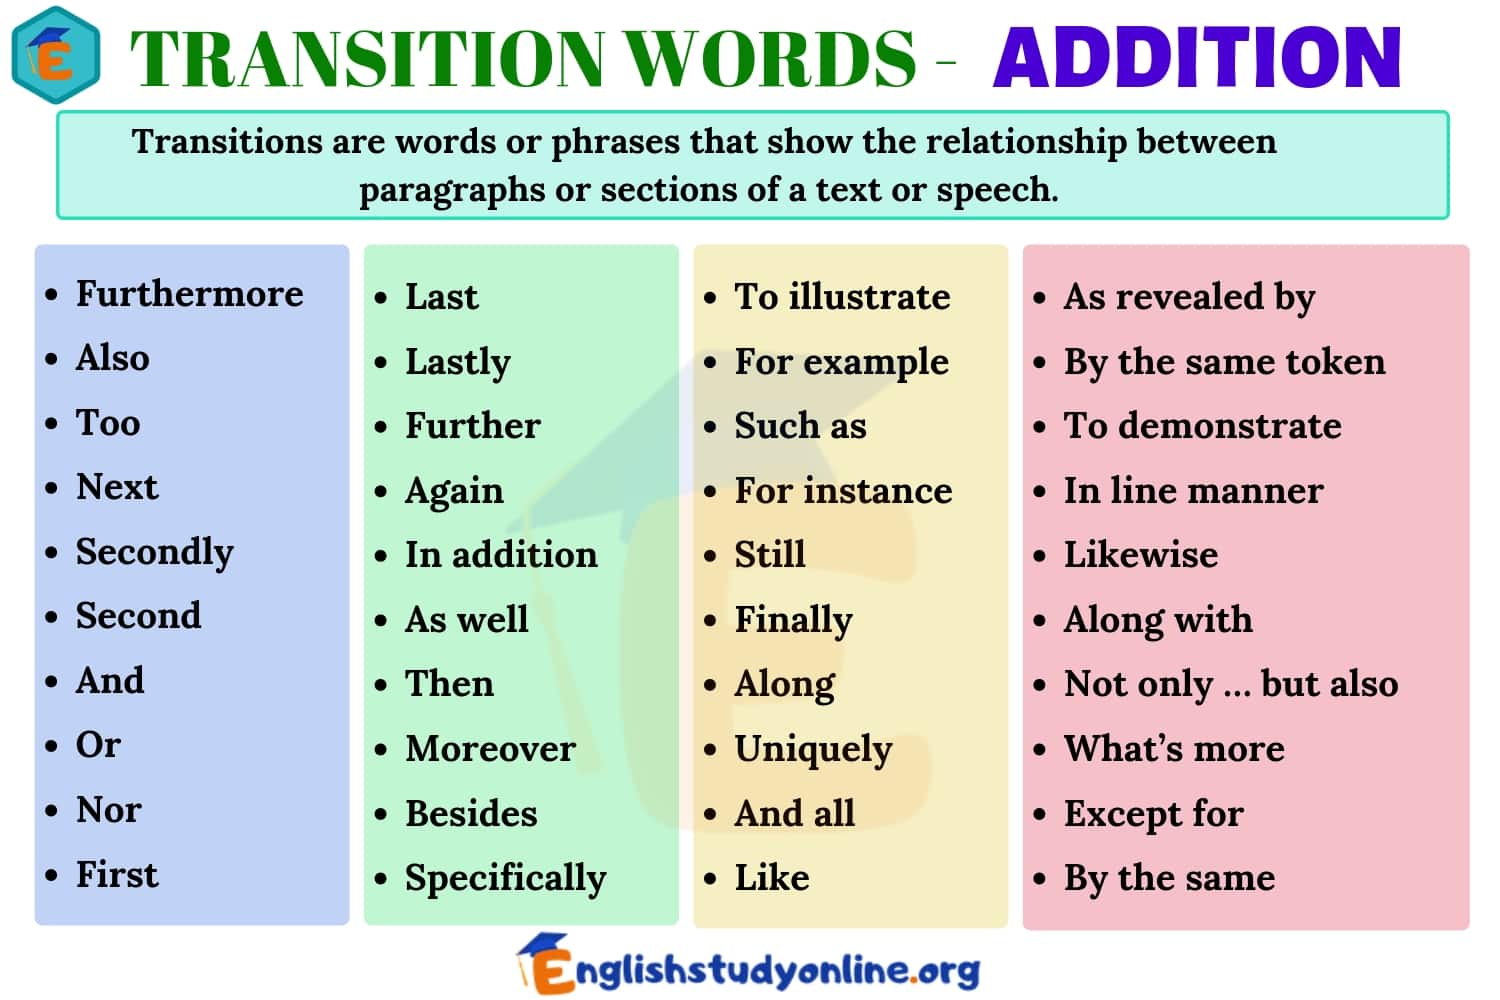 Transition Words - ADDITION